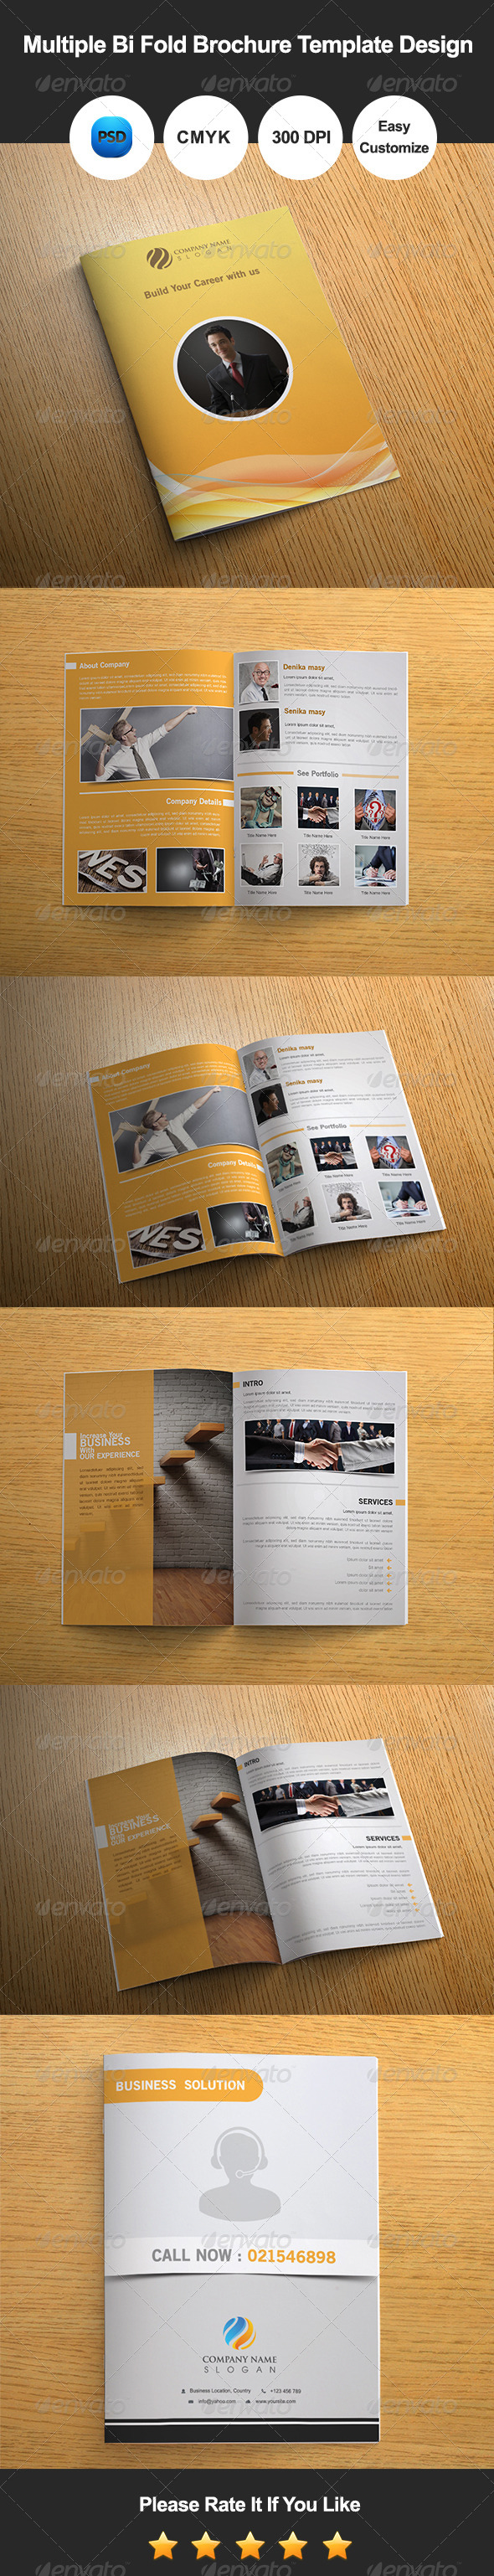 GraphicRiver Multiple Bi Fold Brochure Template Design 8427248